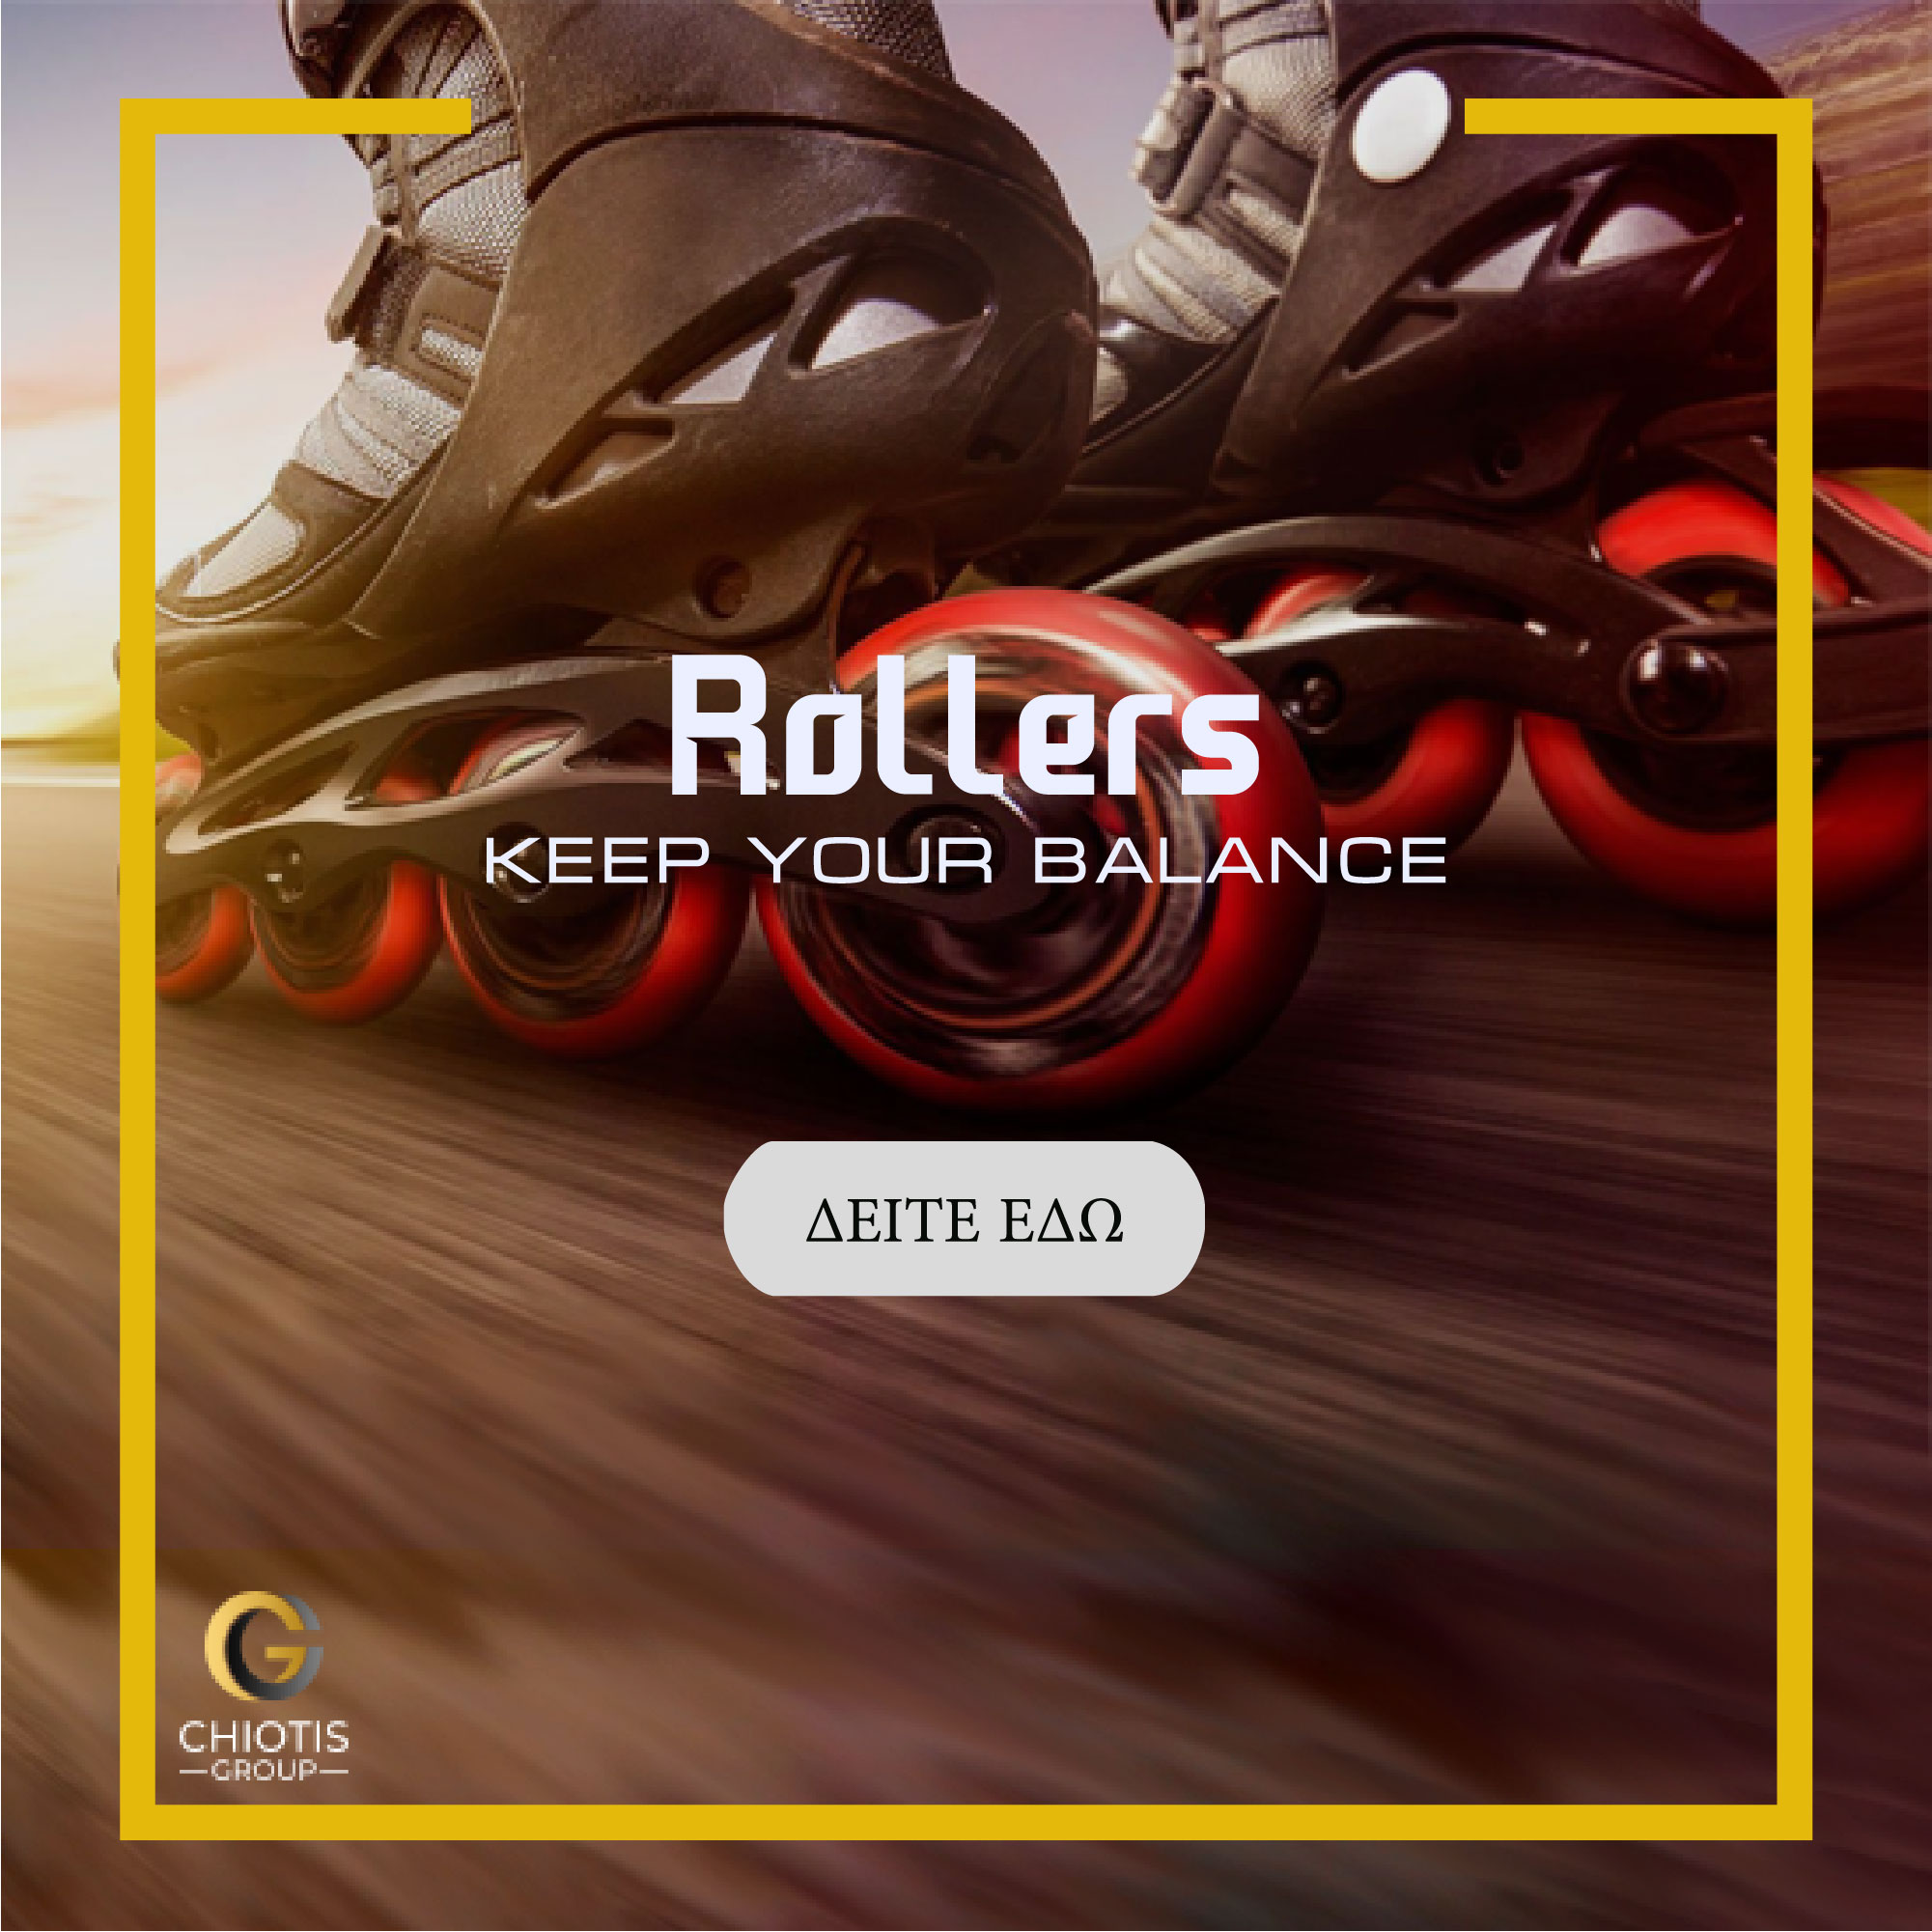 Rollers | Chiotis Group